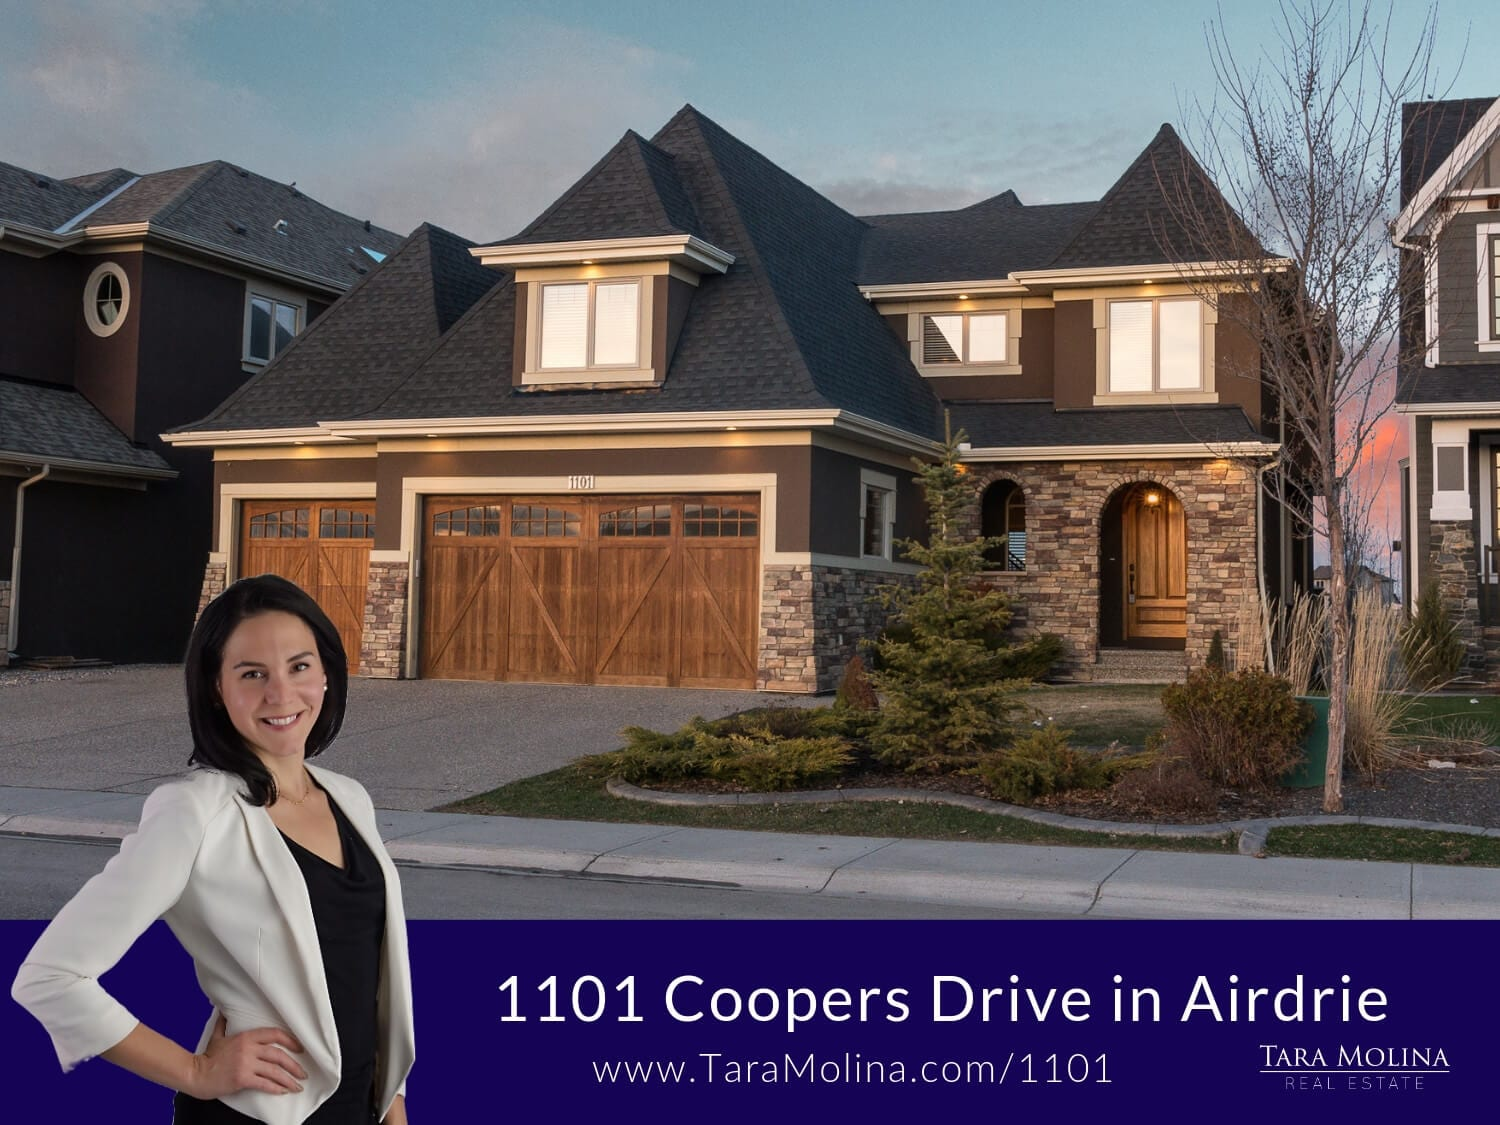 1101 Coopers Drive - Airdrie